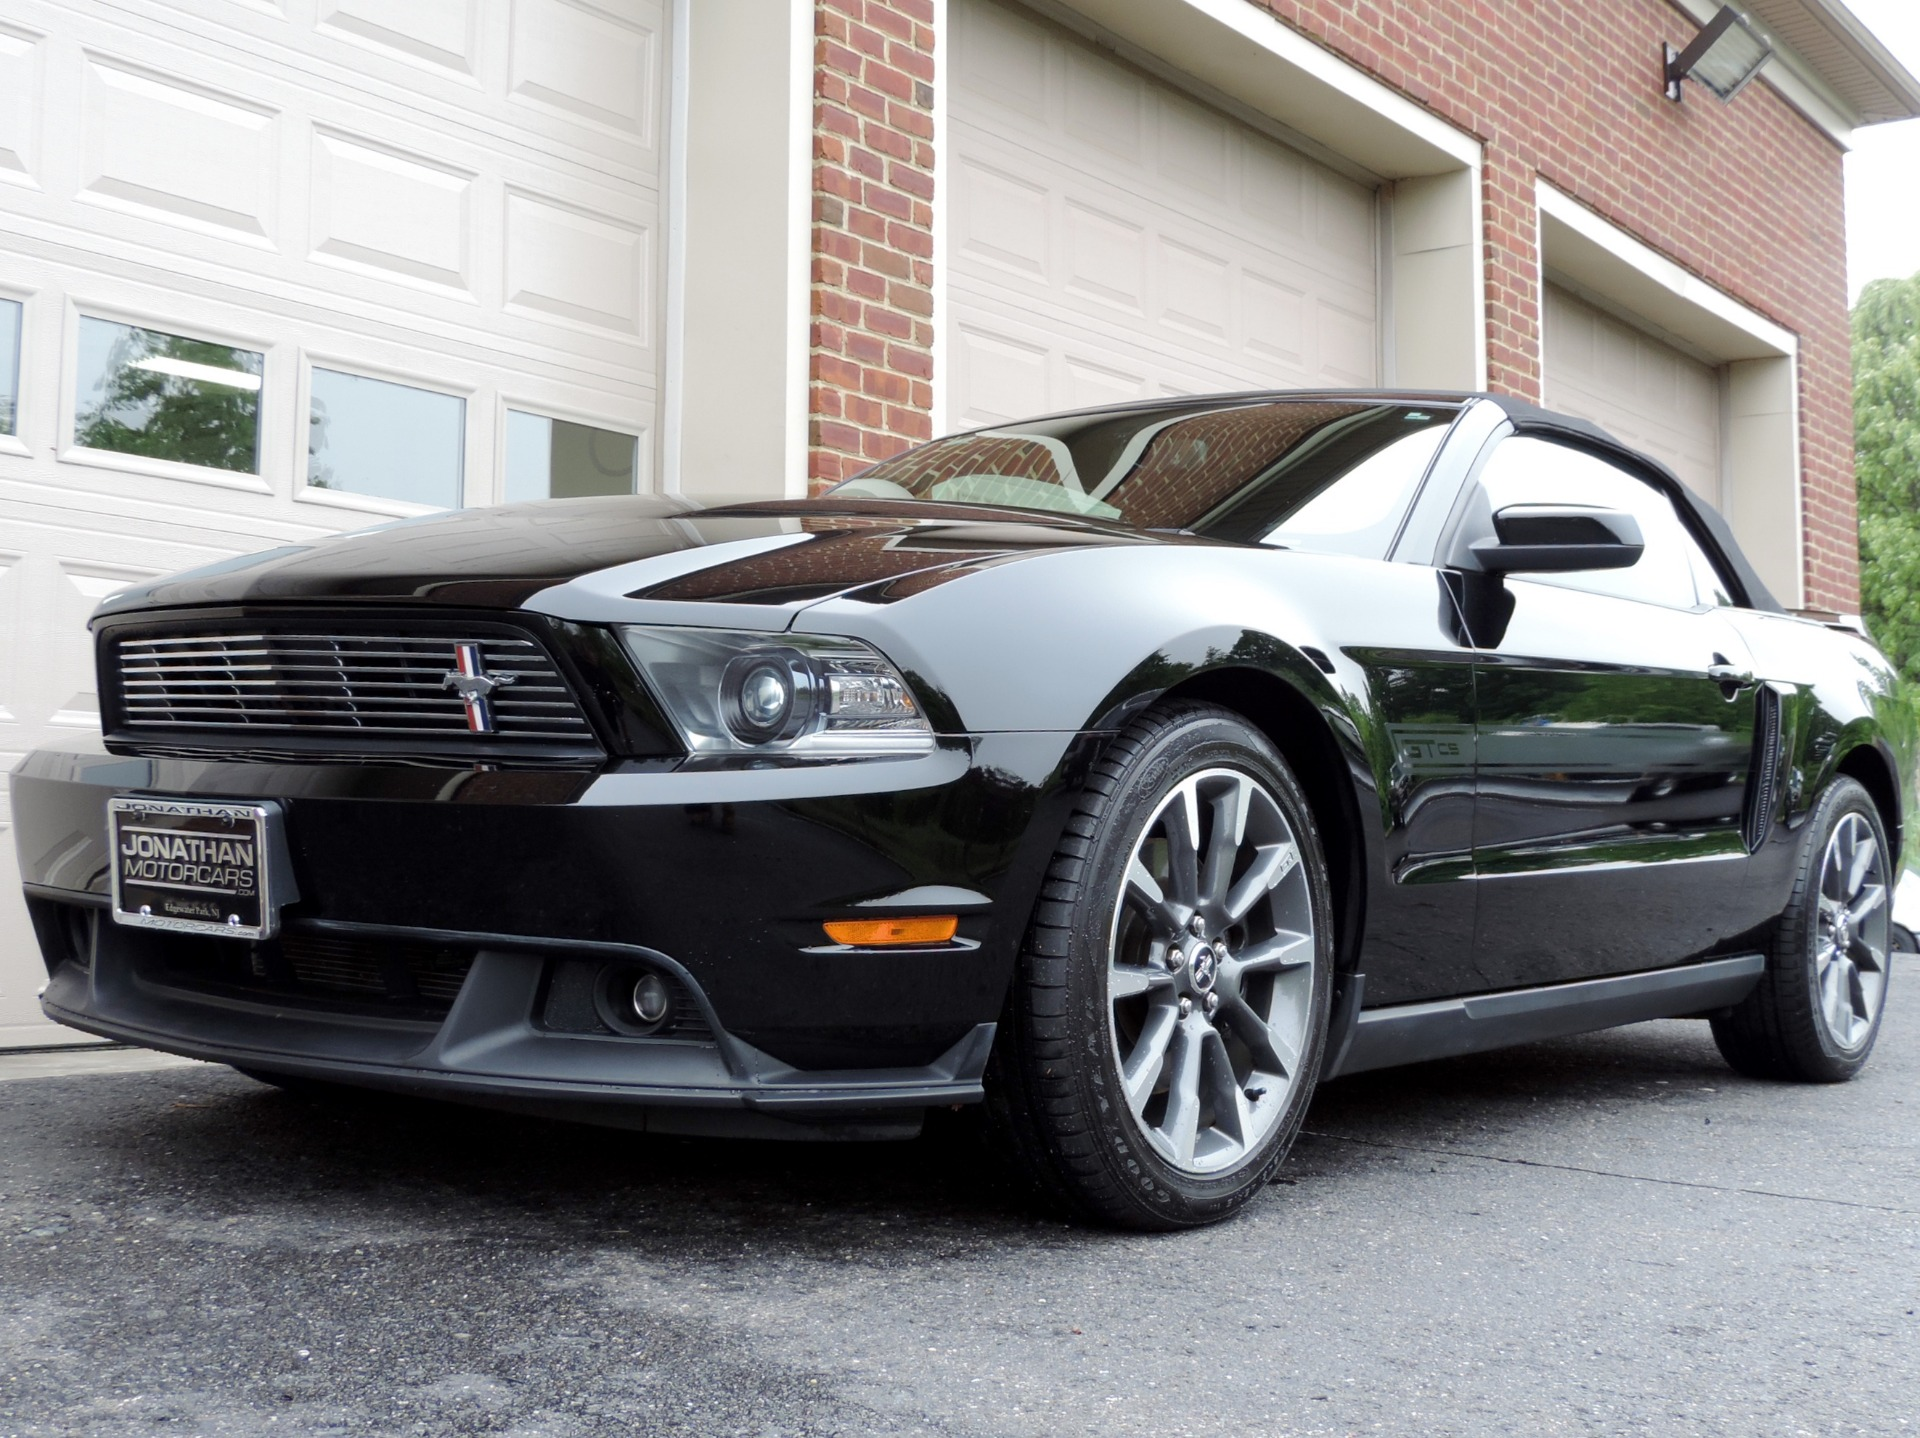 Ford Dealers Nj >> 2011 Ford Mustang GT Premium California Special ...